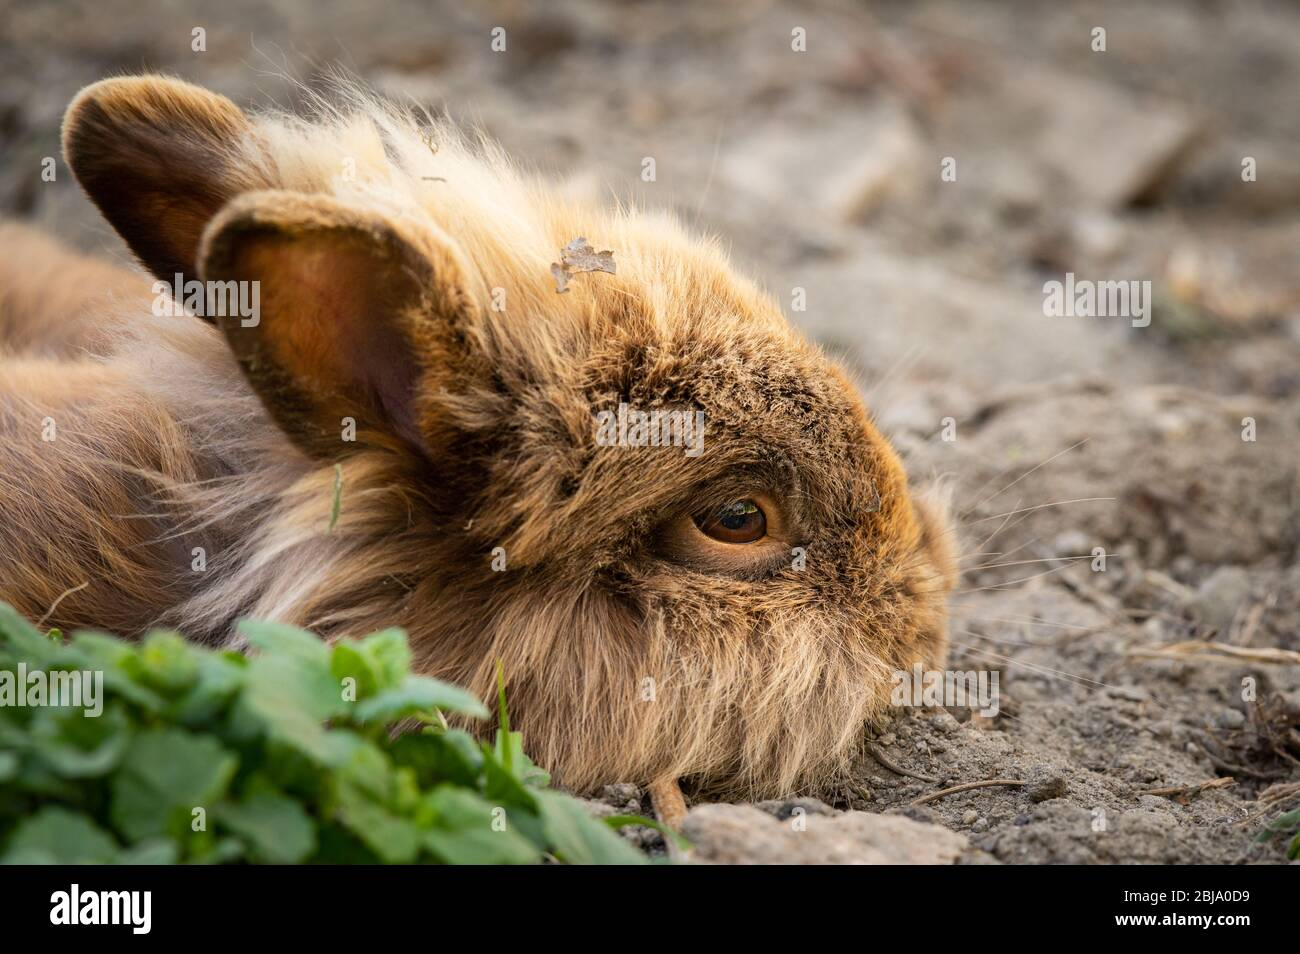 A brown cute dwarf rabbit (lions head) resting on the ground in the garden Stock Photo